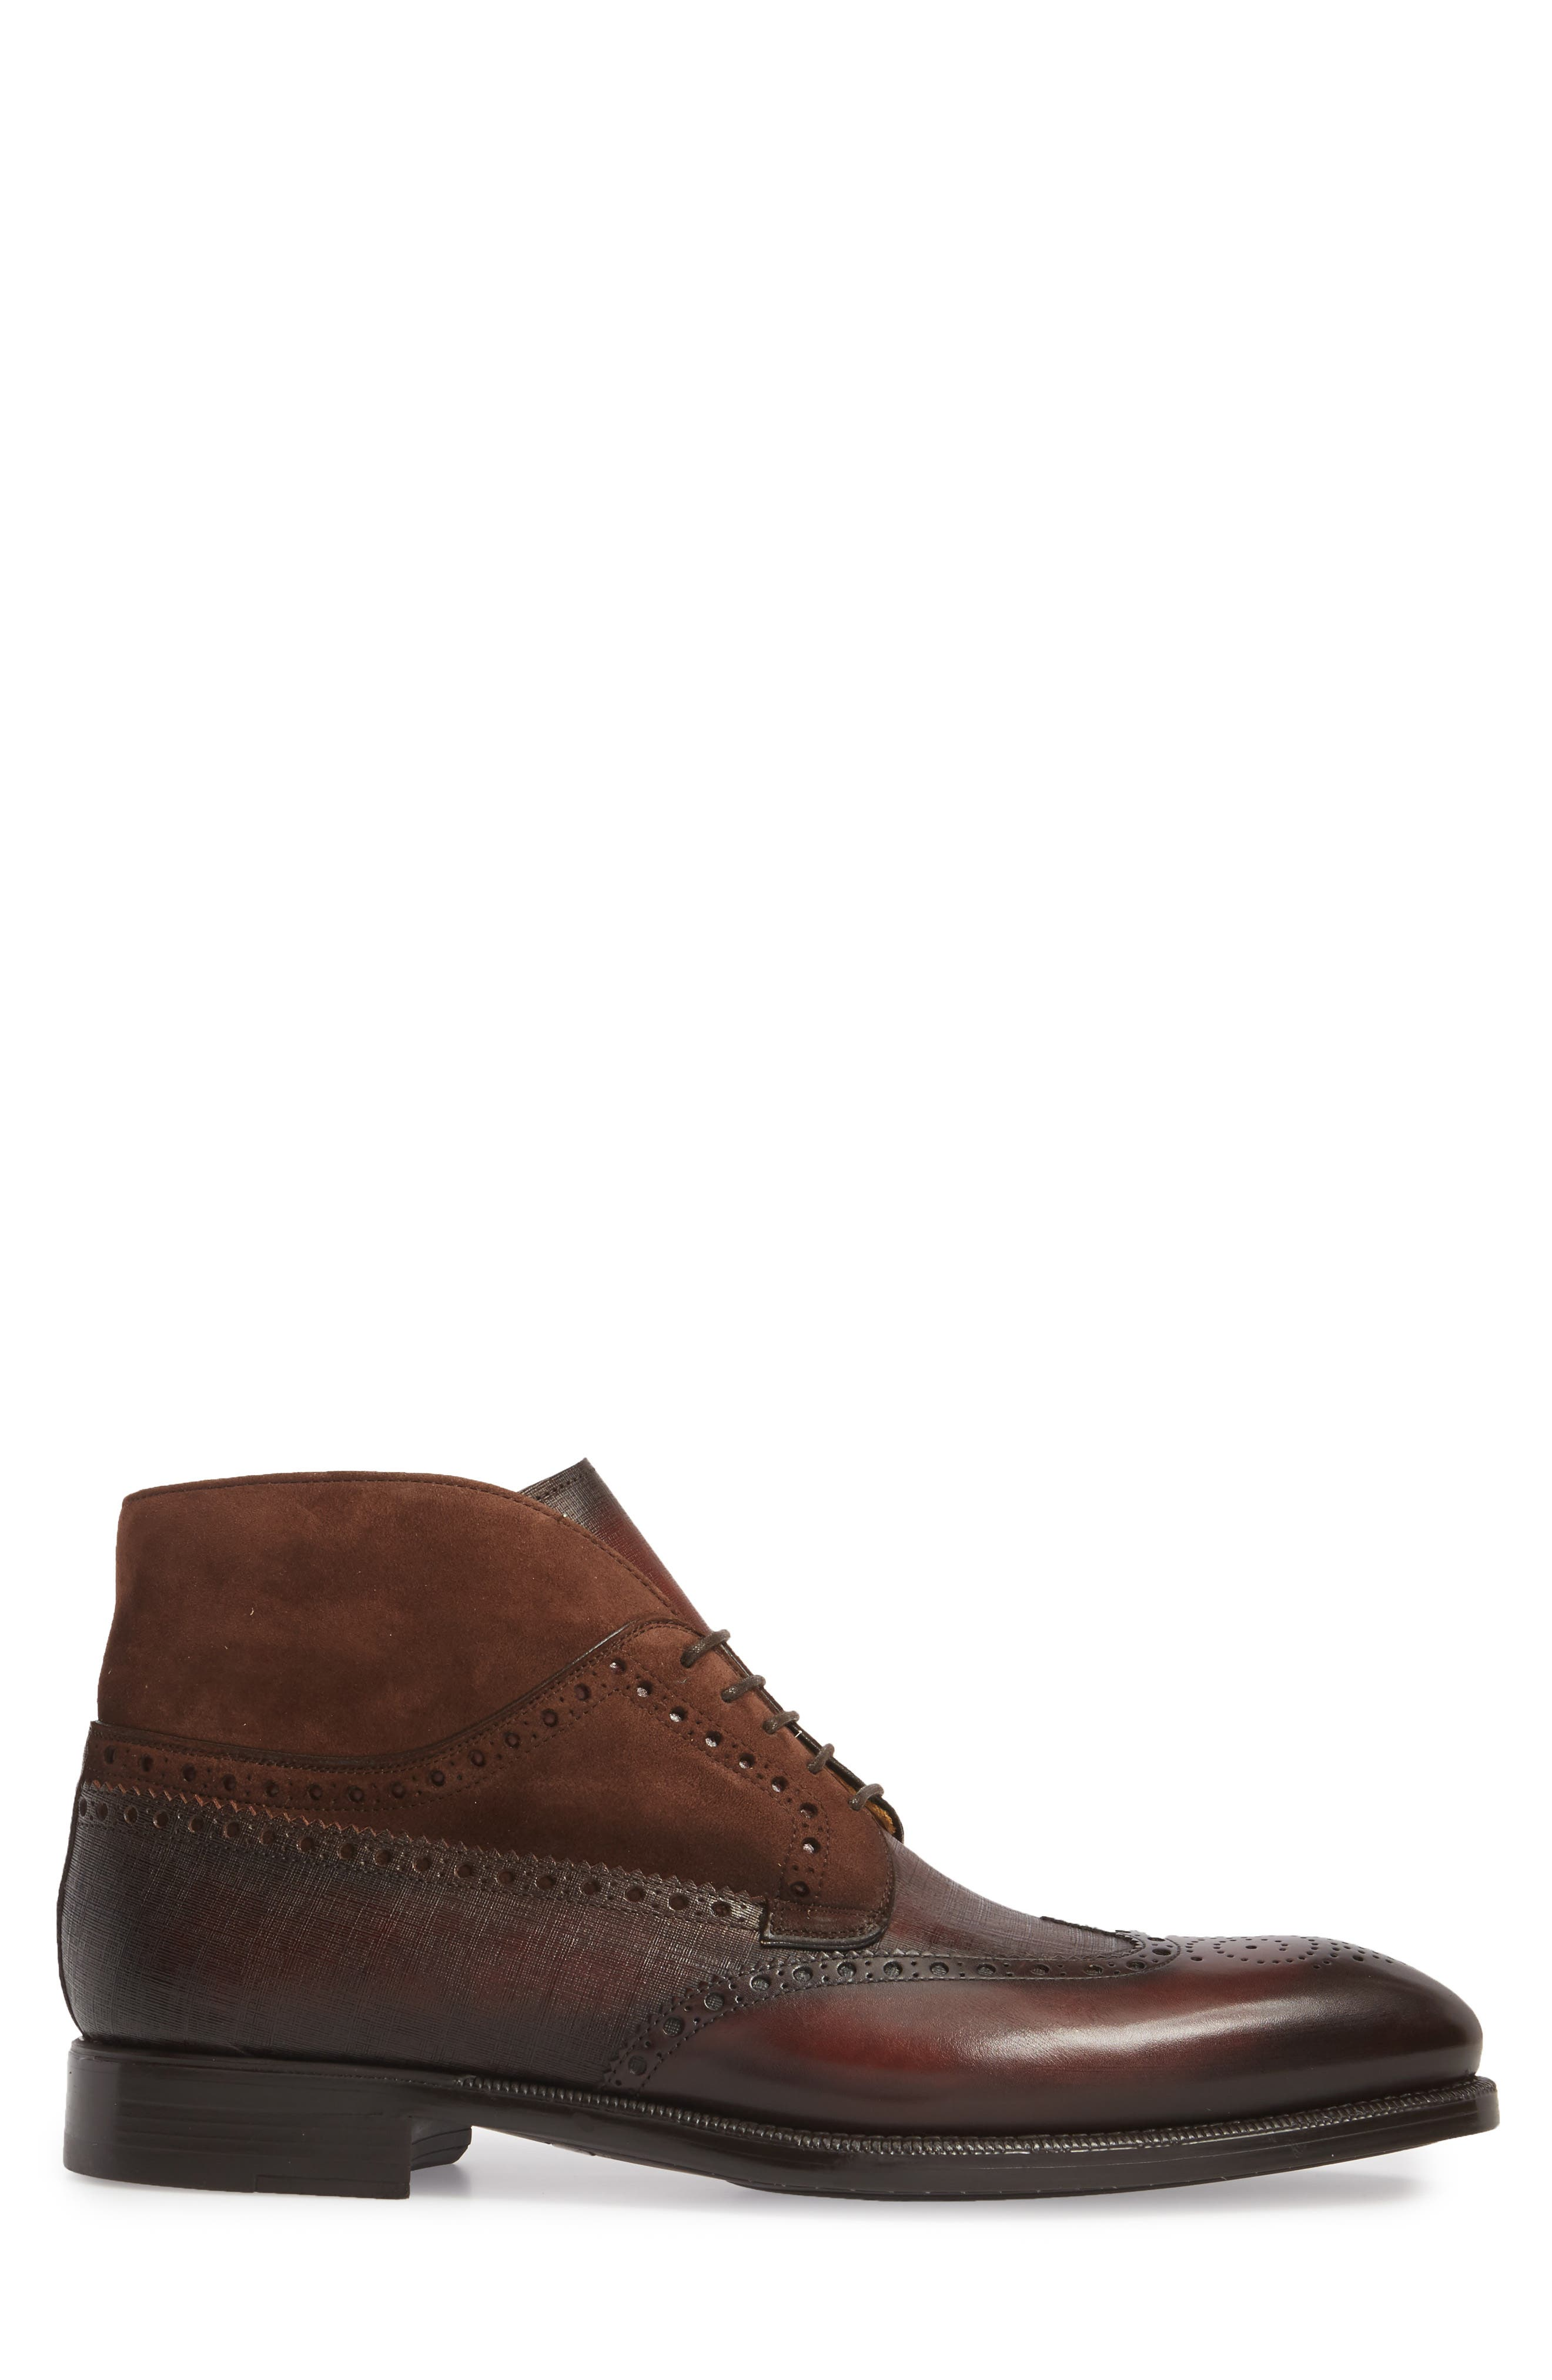 Saxon Wingtip Boot,                             Alternate thumbnail 3, color,                             Mid-Brown Leather